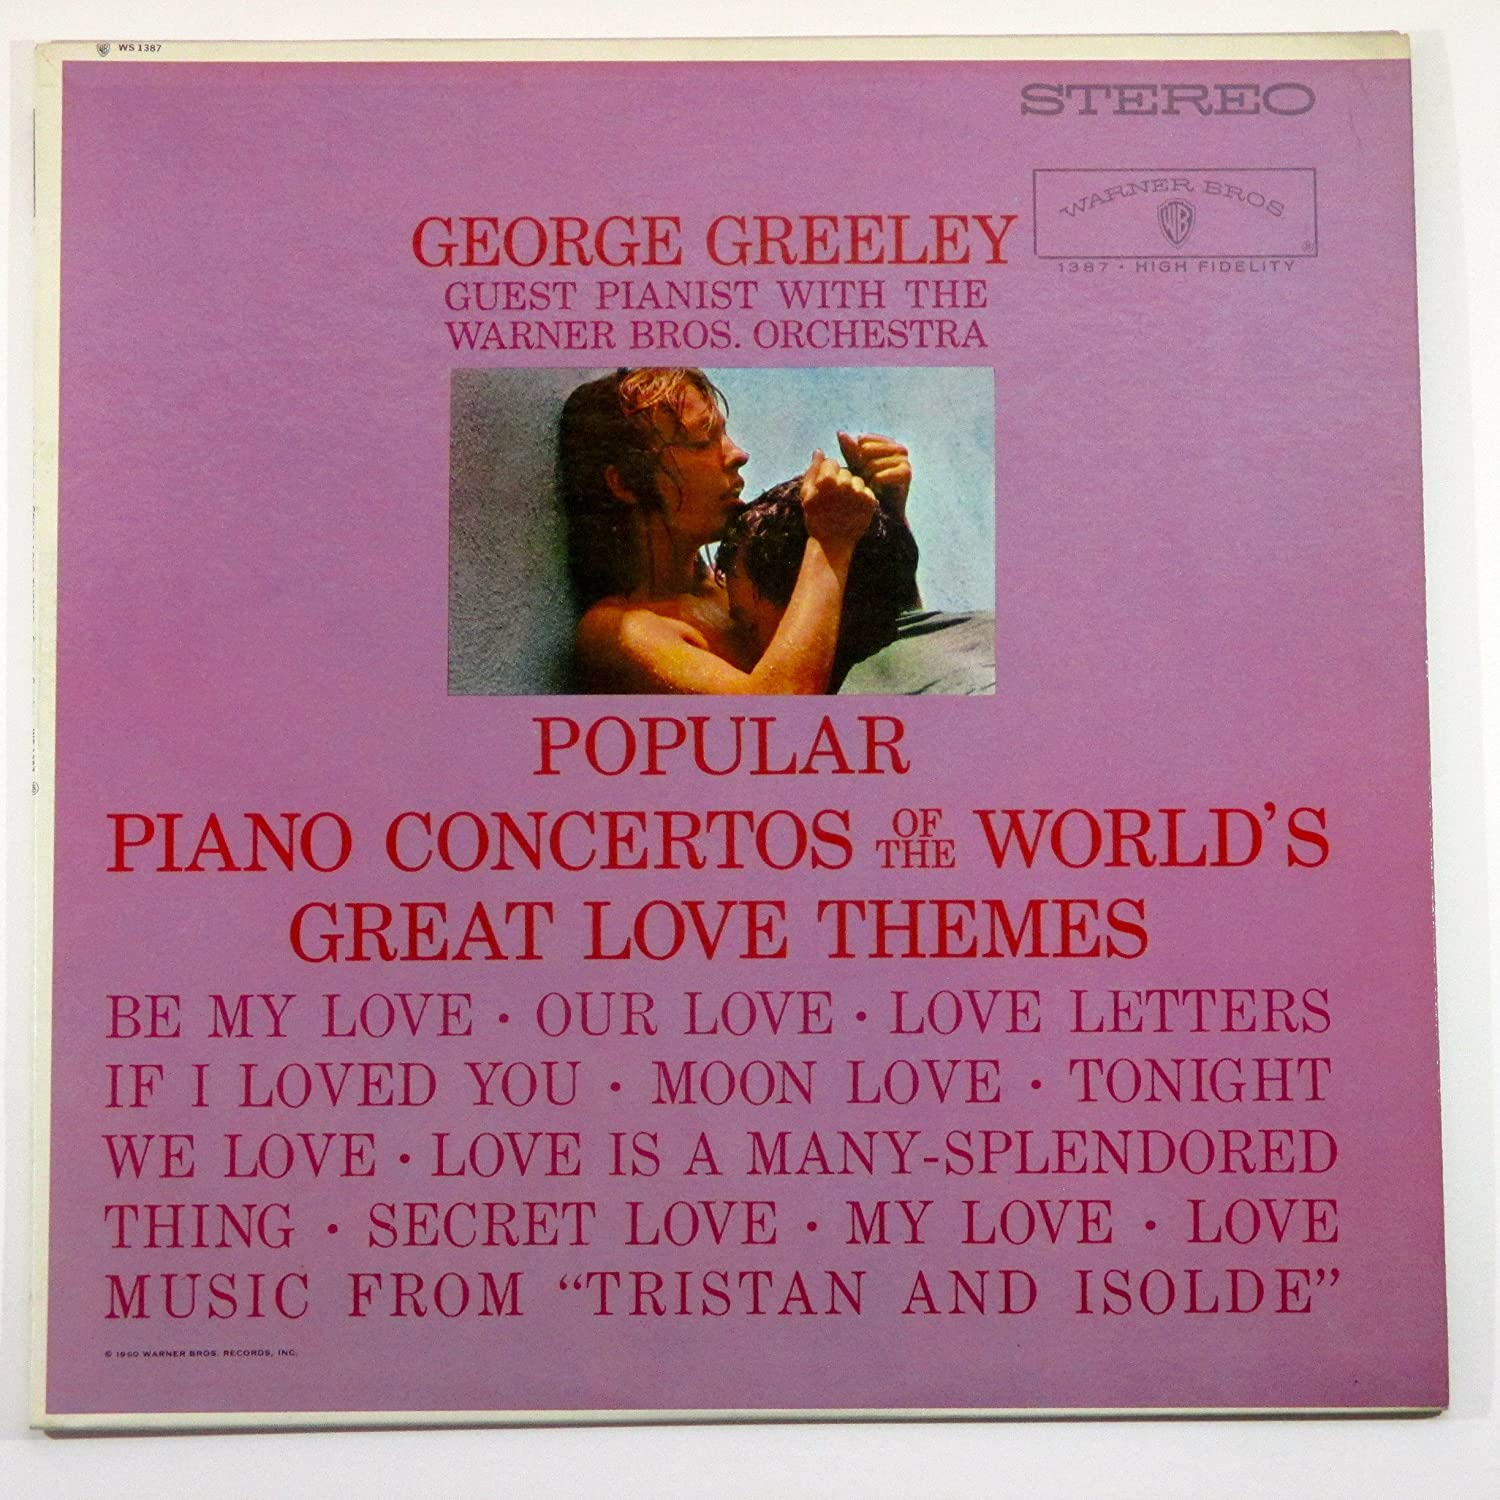 GEORGE GREELEY - popular piano concertos of the world's